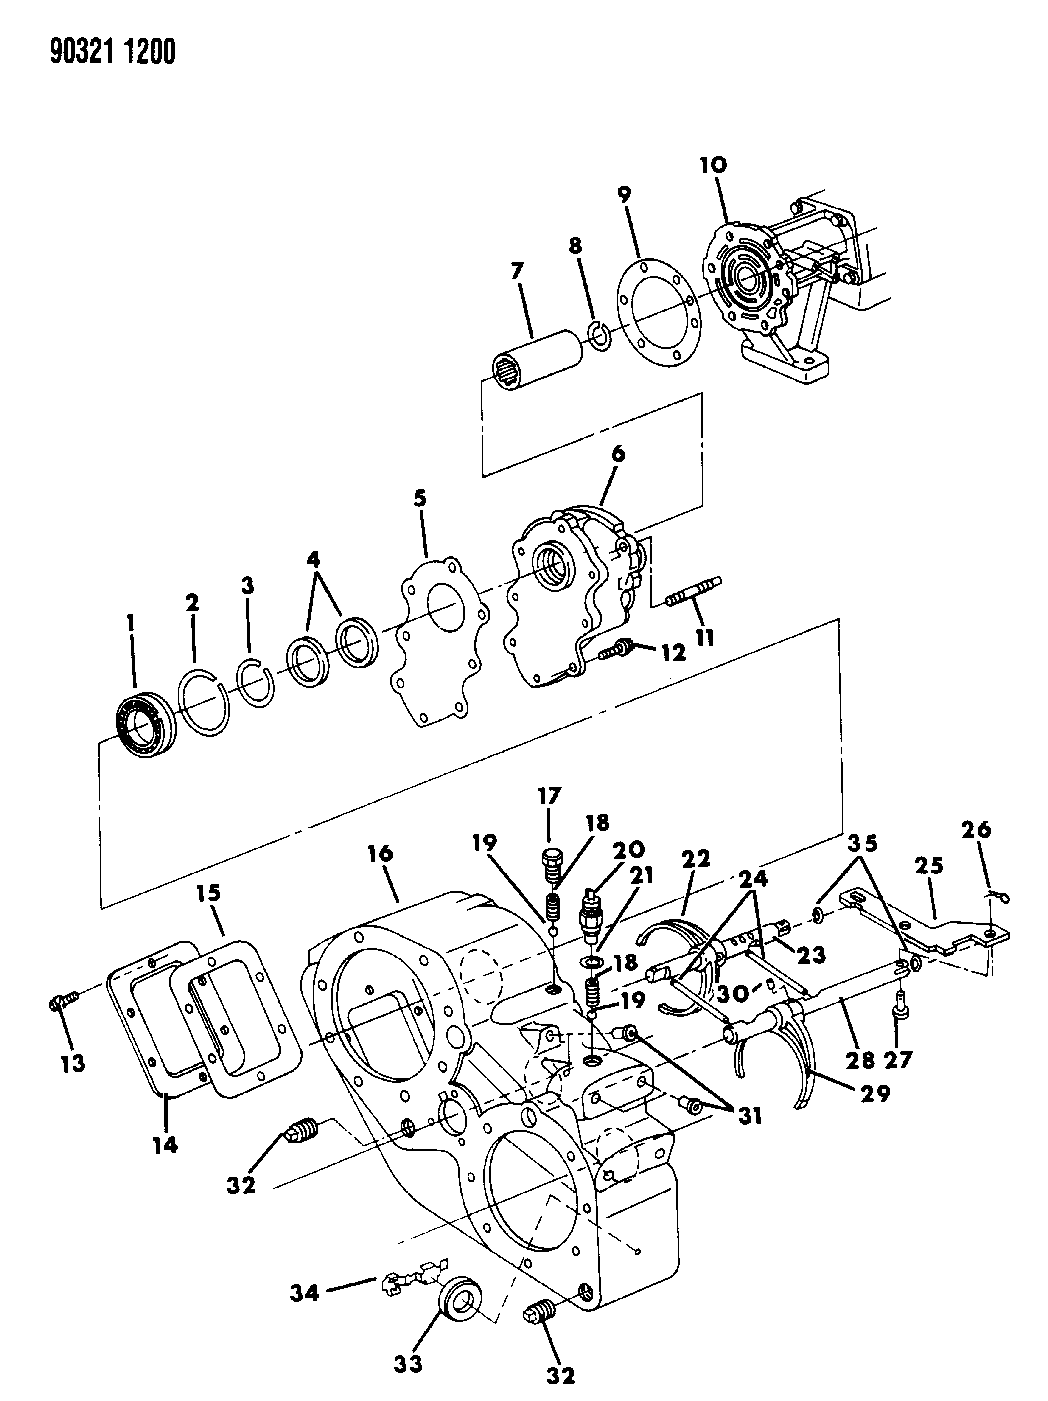 1990 Dodge W250 Case Transfer Related Parts Diagram Wiring Schematic Thumbnail 2